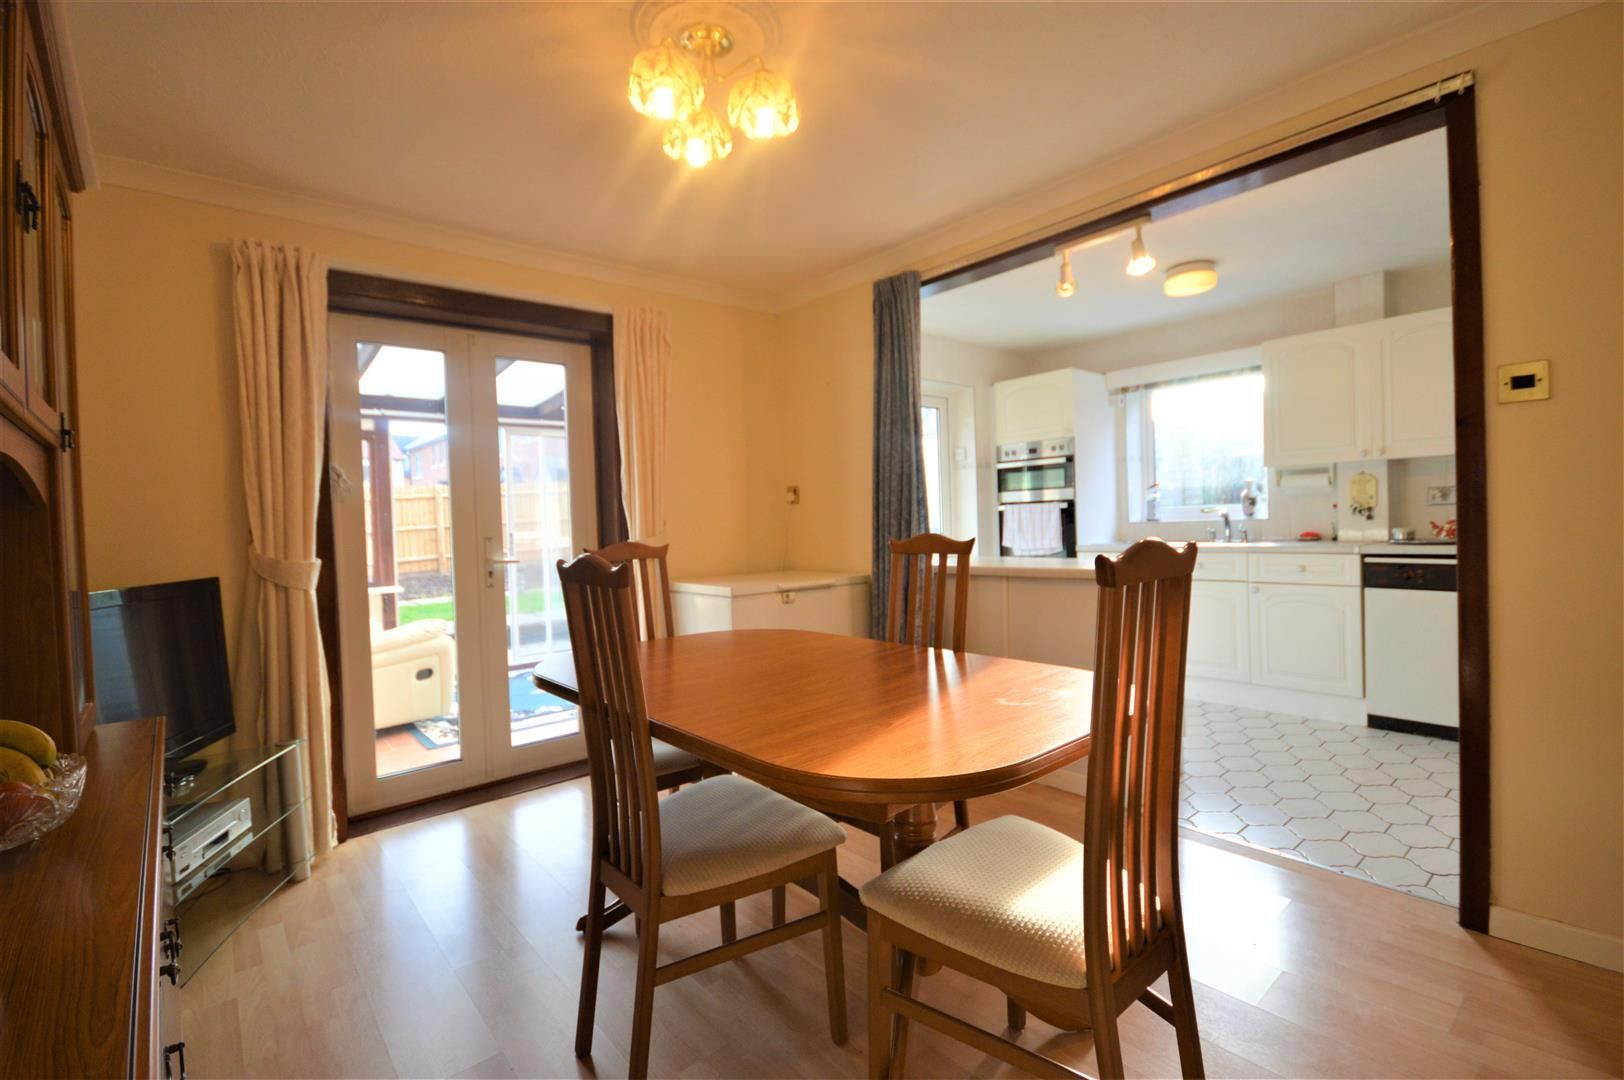 4 bed detached for sale in Weobley  - Property Image 3